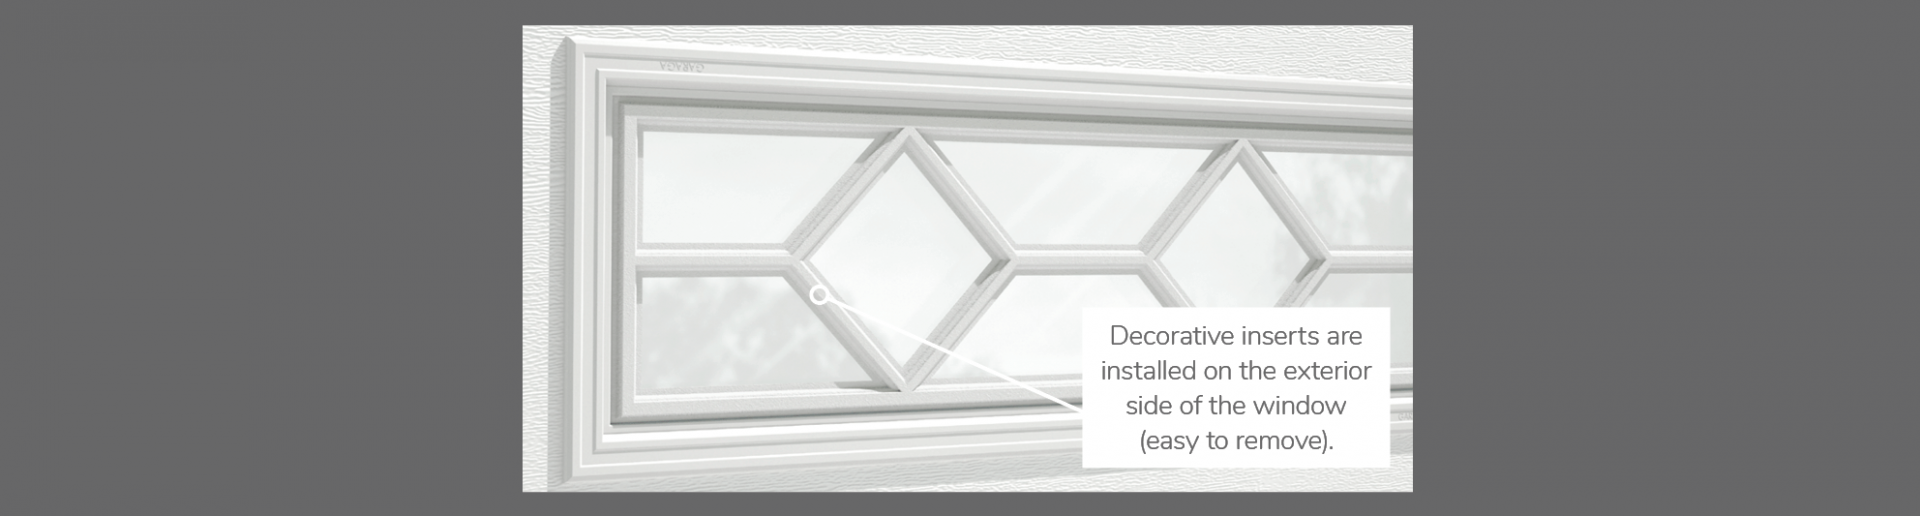 "Waterton Decorative Insert, 40"" x 13"", 21"" x 13"", 41"" x 16"" or 20"" x 13"", available for door R-16, R-12, 3 layers - Polystyrene, 2 layers - Polystyrene and Non-insulated"